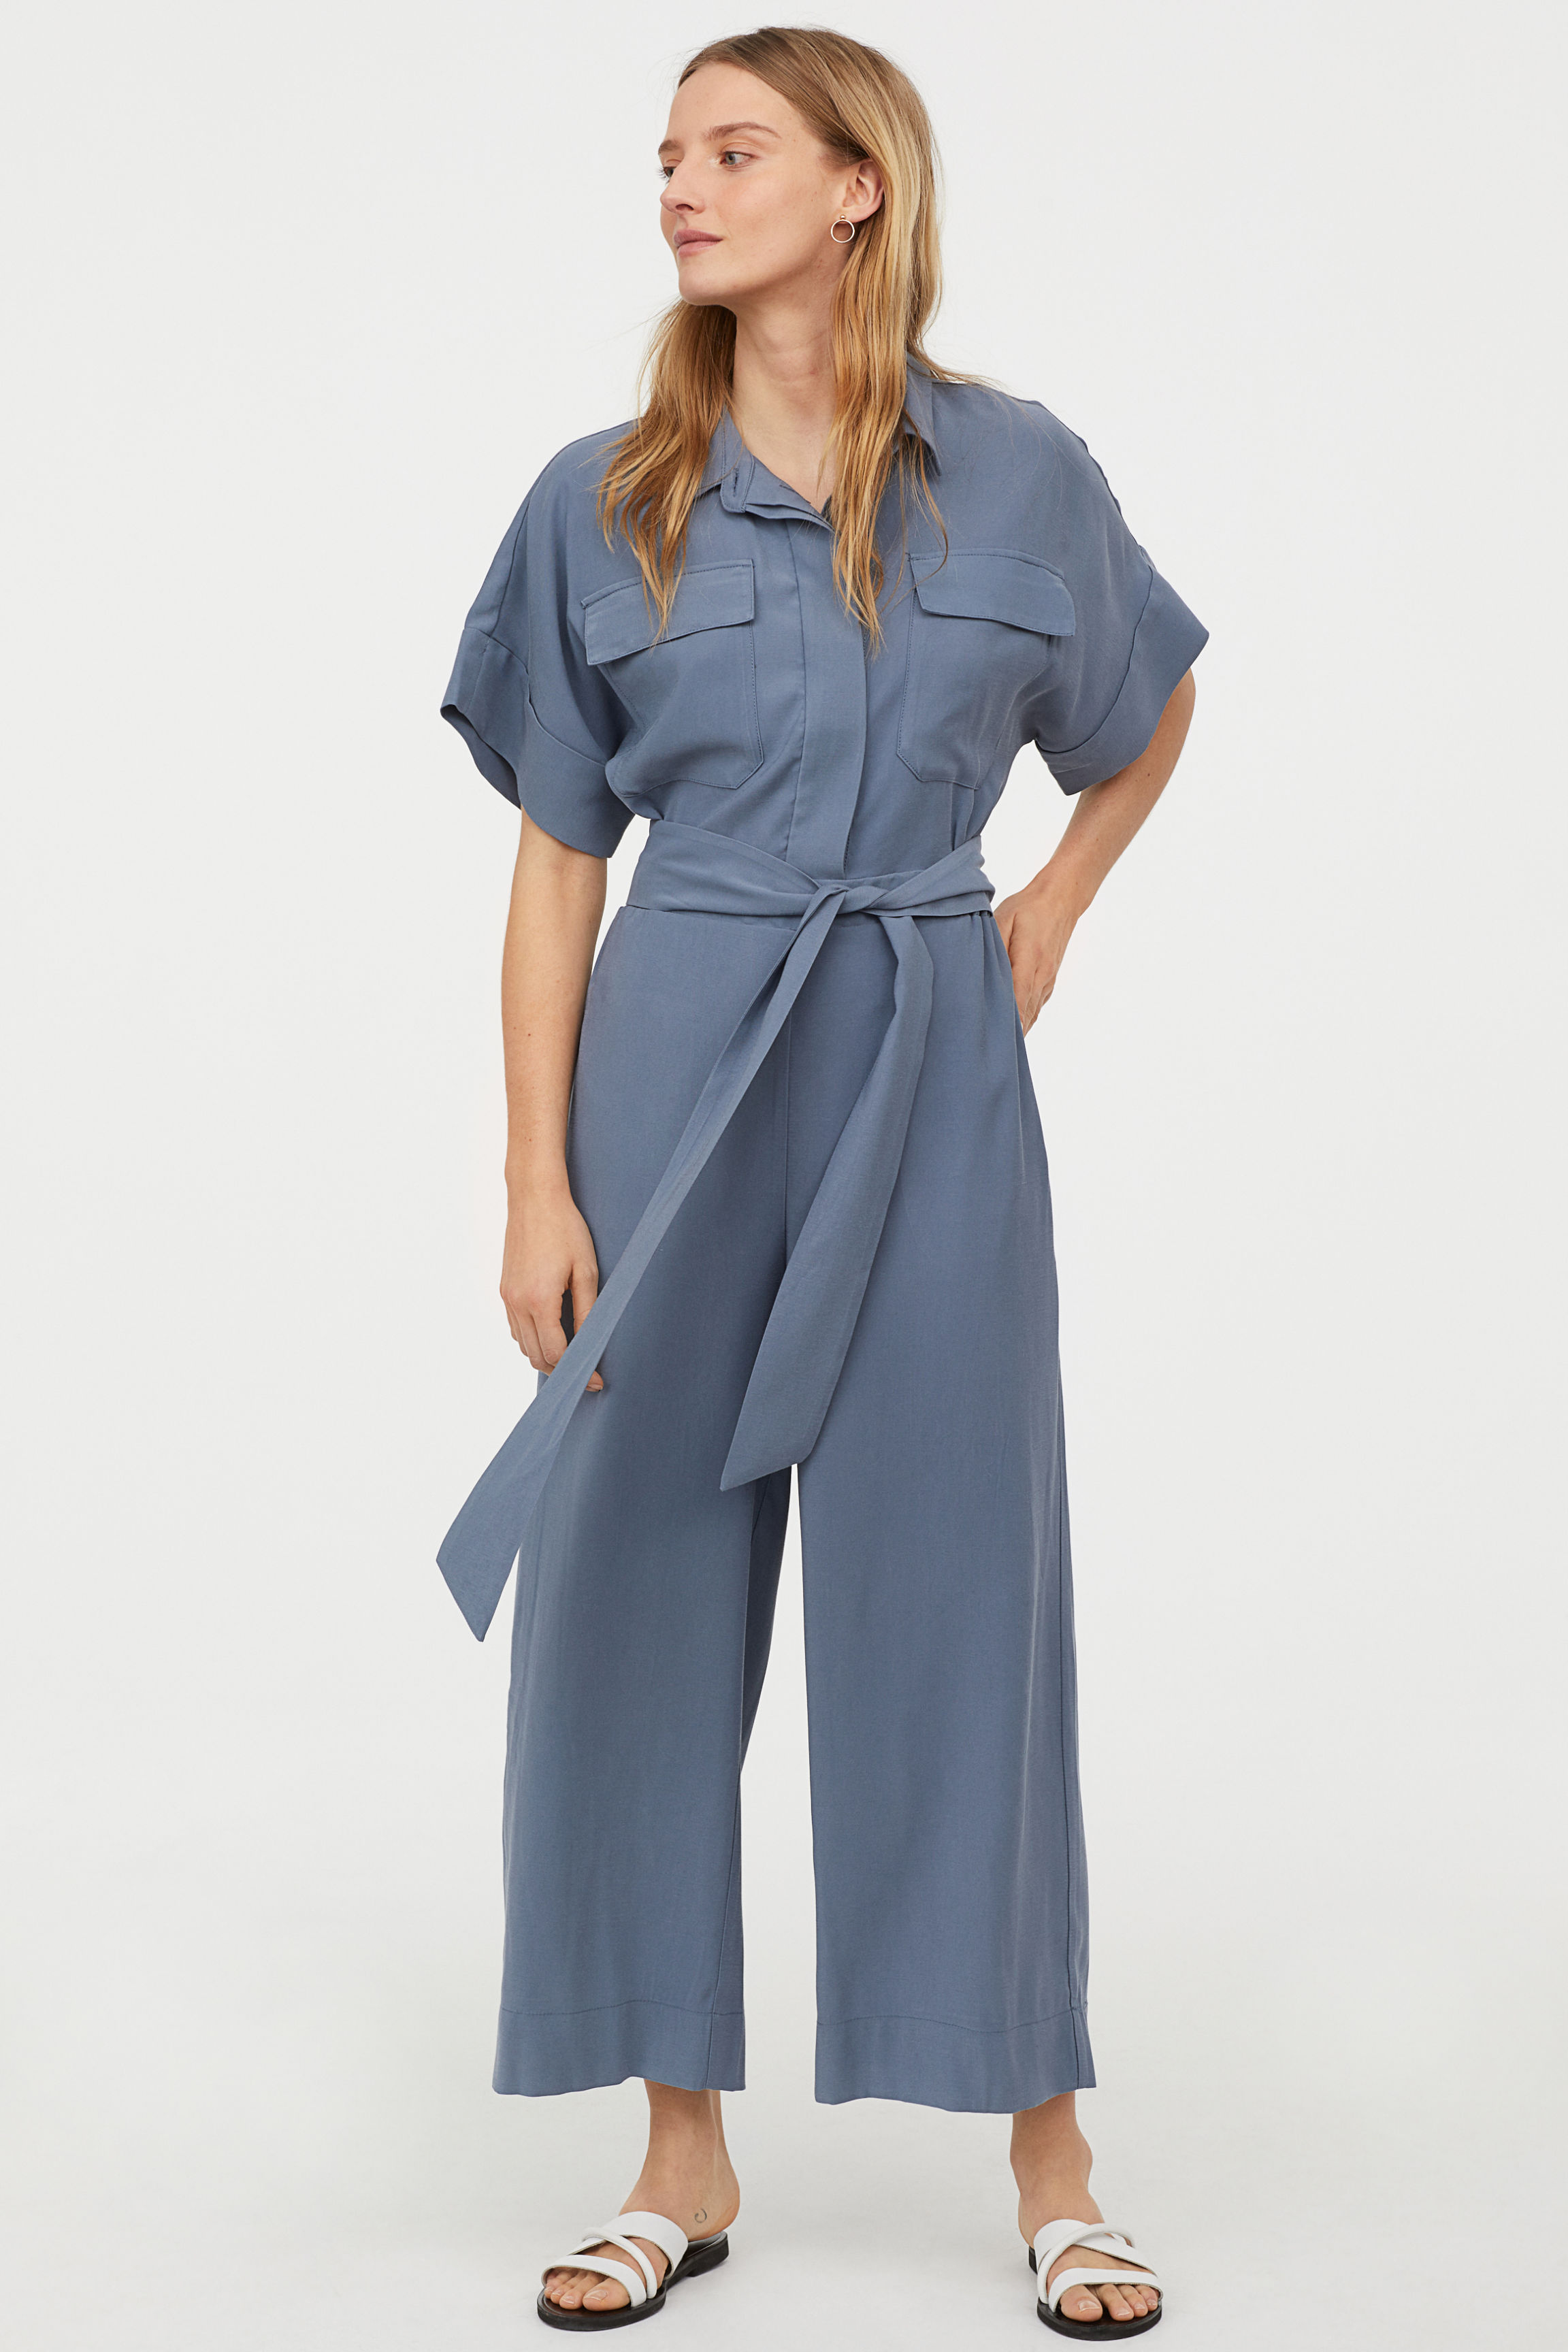 Jumpsuit mit Bindegürtel - Graublau - Ladies | H&M AT